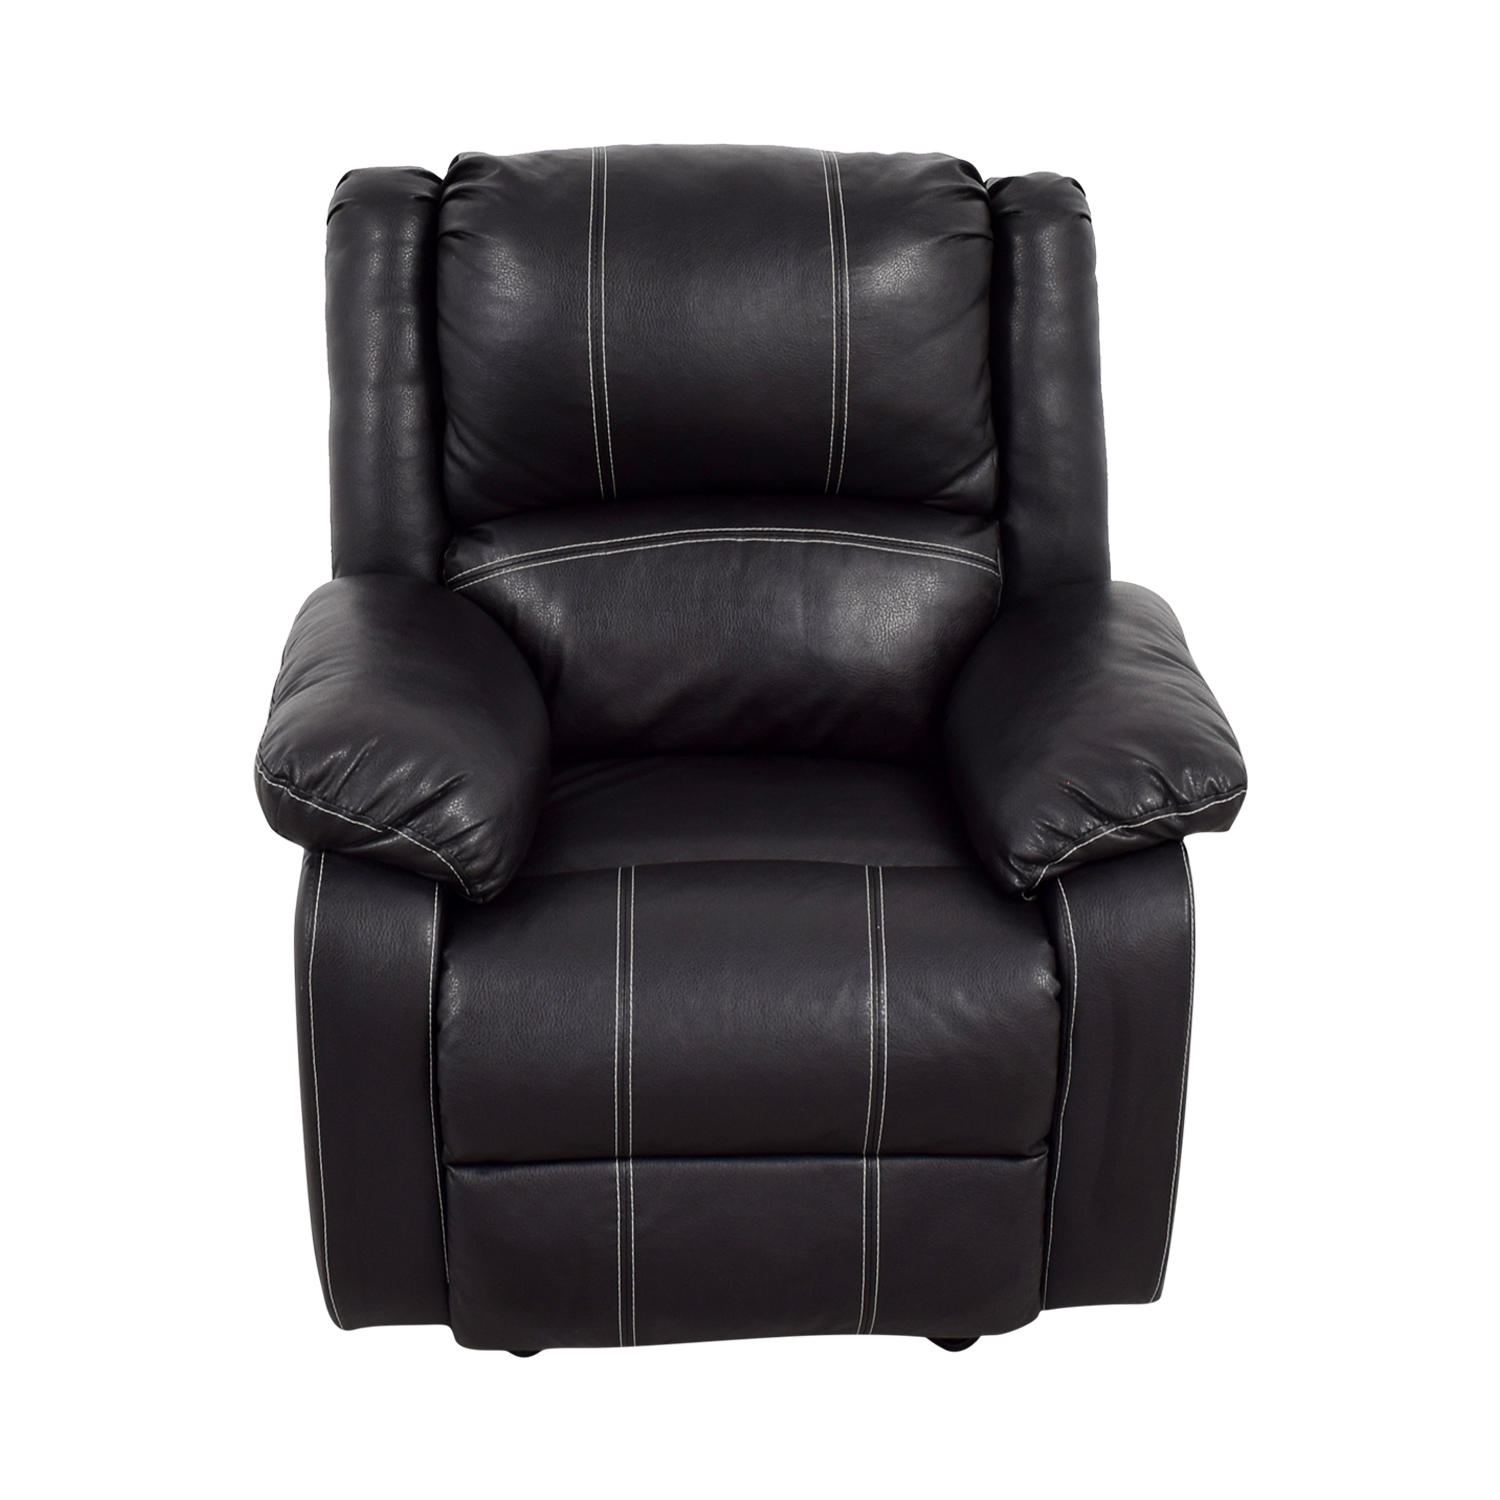 buy Acme Black Leather Recliner Acme Sofas